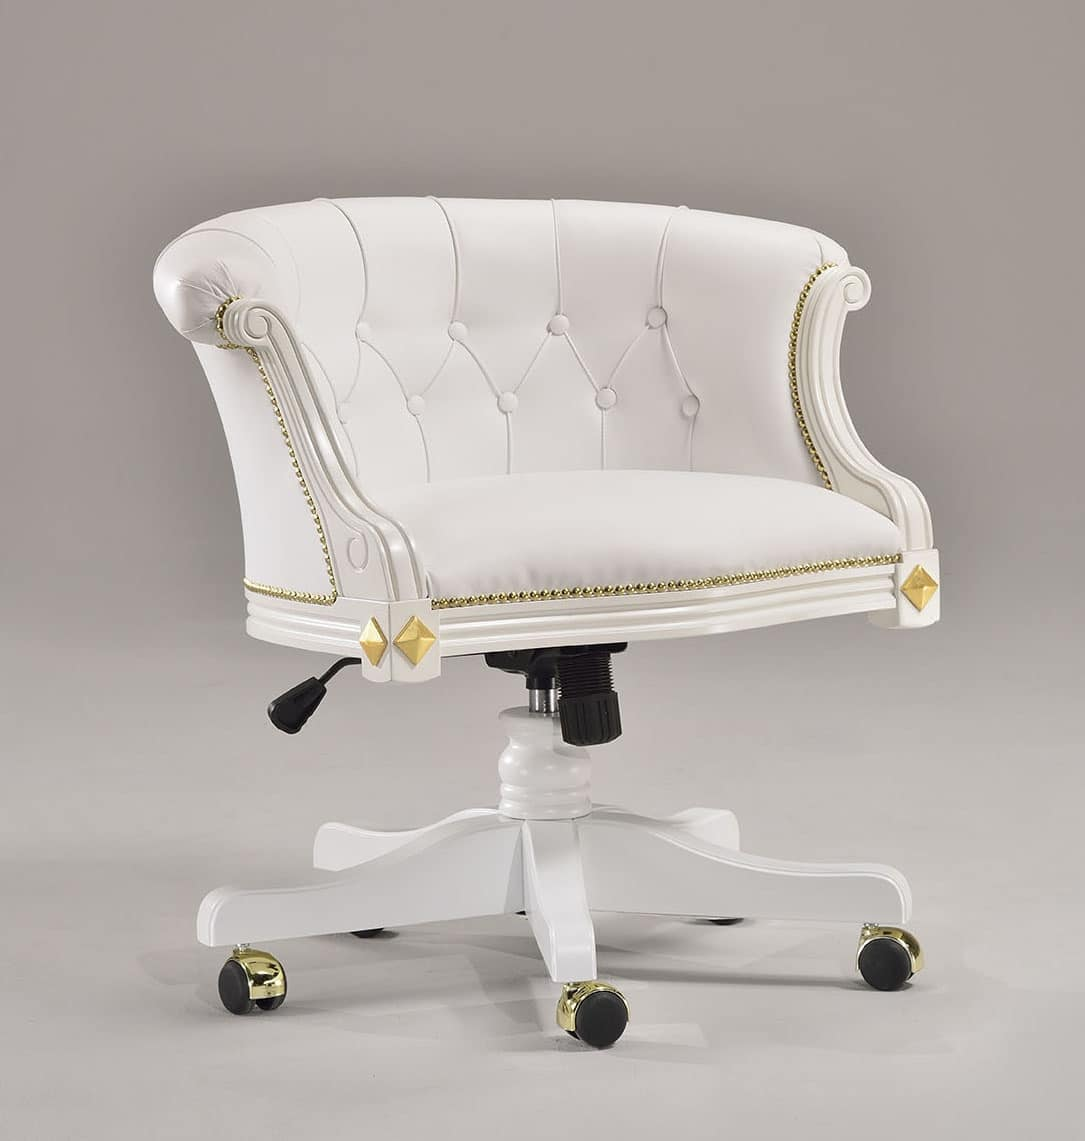 HILTON office armchair 8664A, Office chair in classic style, with elegant decorations